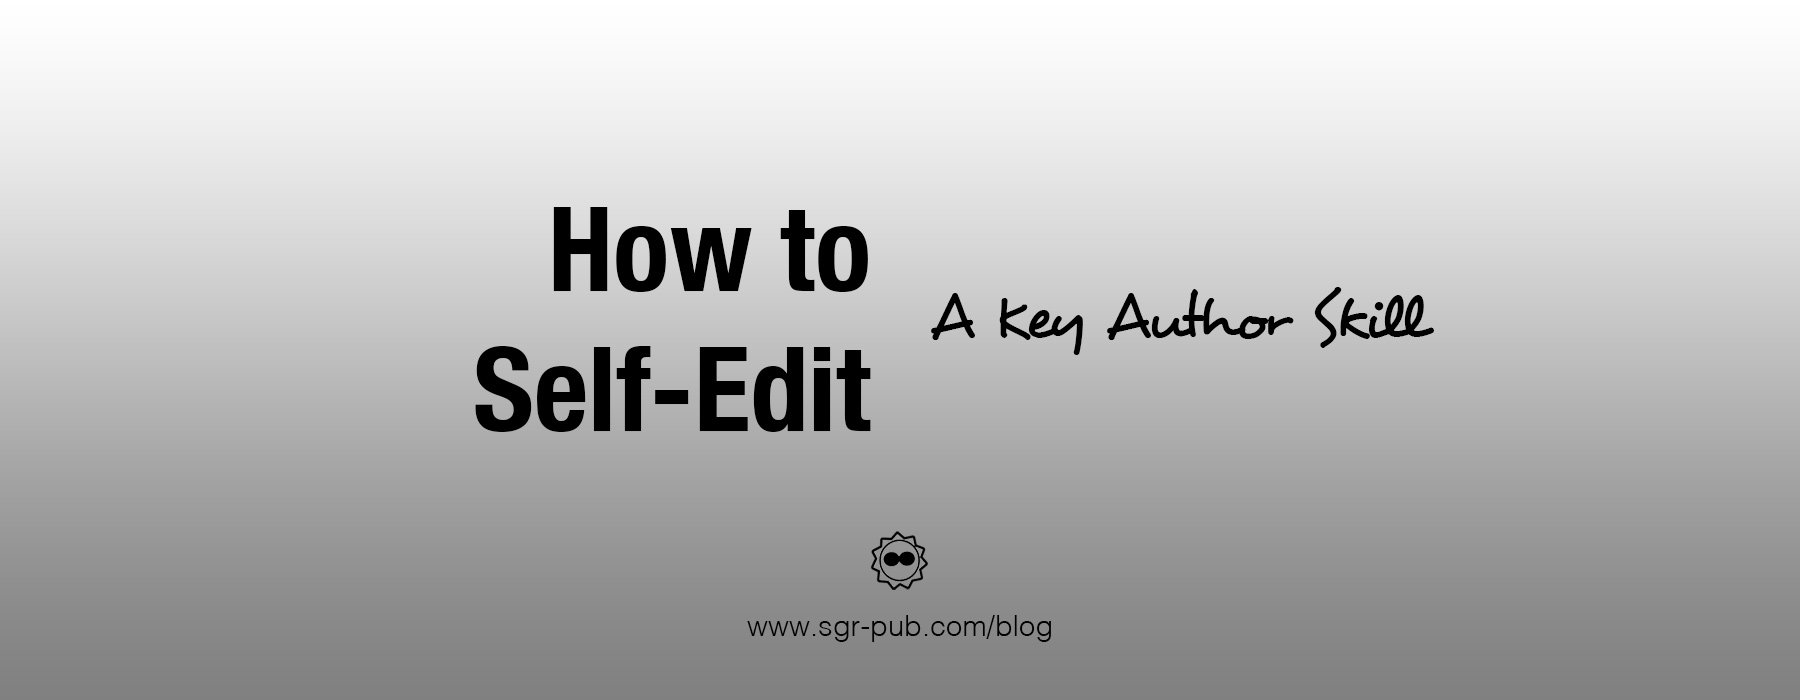 How to self-edit: A key author skill